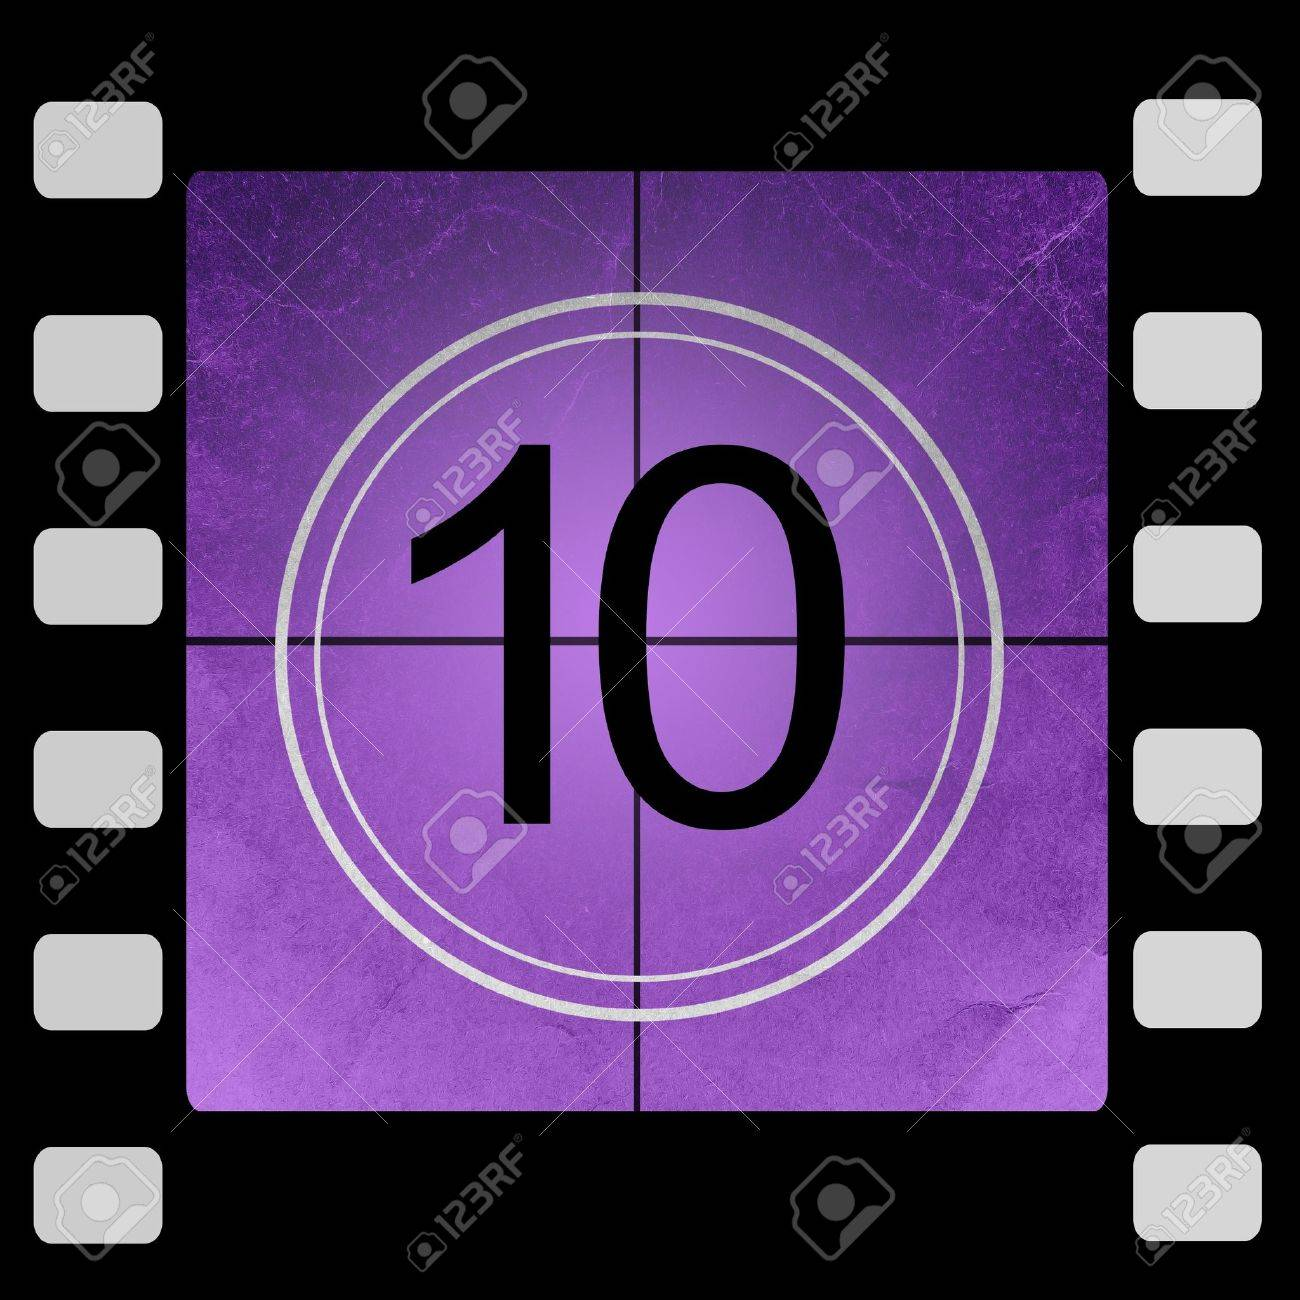 Film Countdown - 10 seconds - YouTube